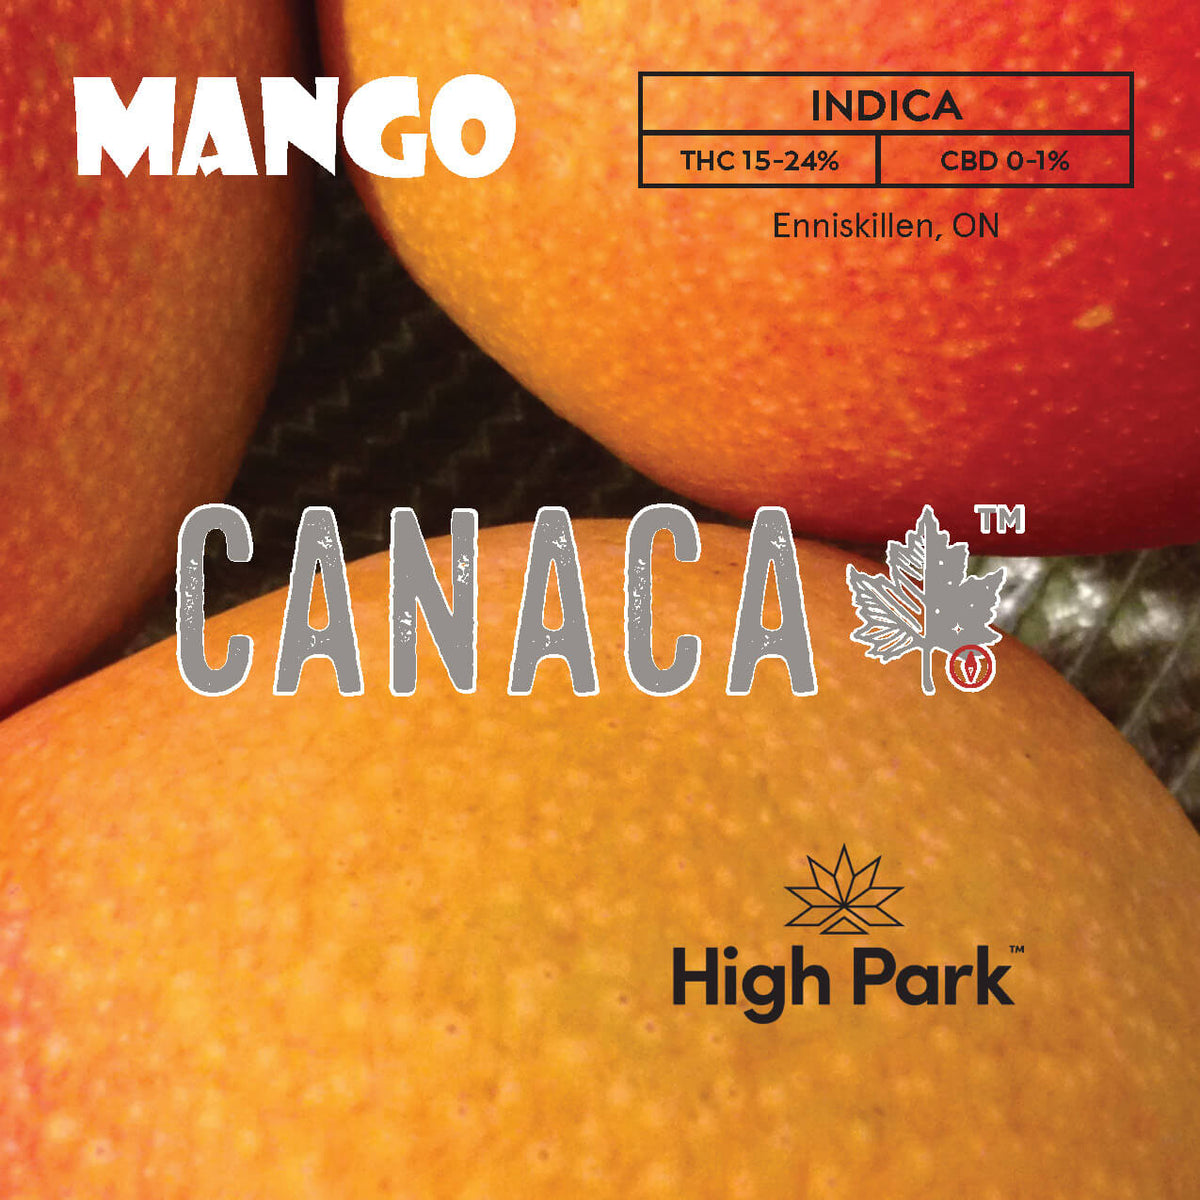 A classic strain that originated in the 60's, most recently crossed with KC33. Canaca Mango's flavour comes from a high terpene content of myrcene, also found in mangos. THC 15-20% CBD 0-1%